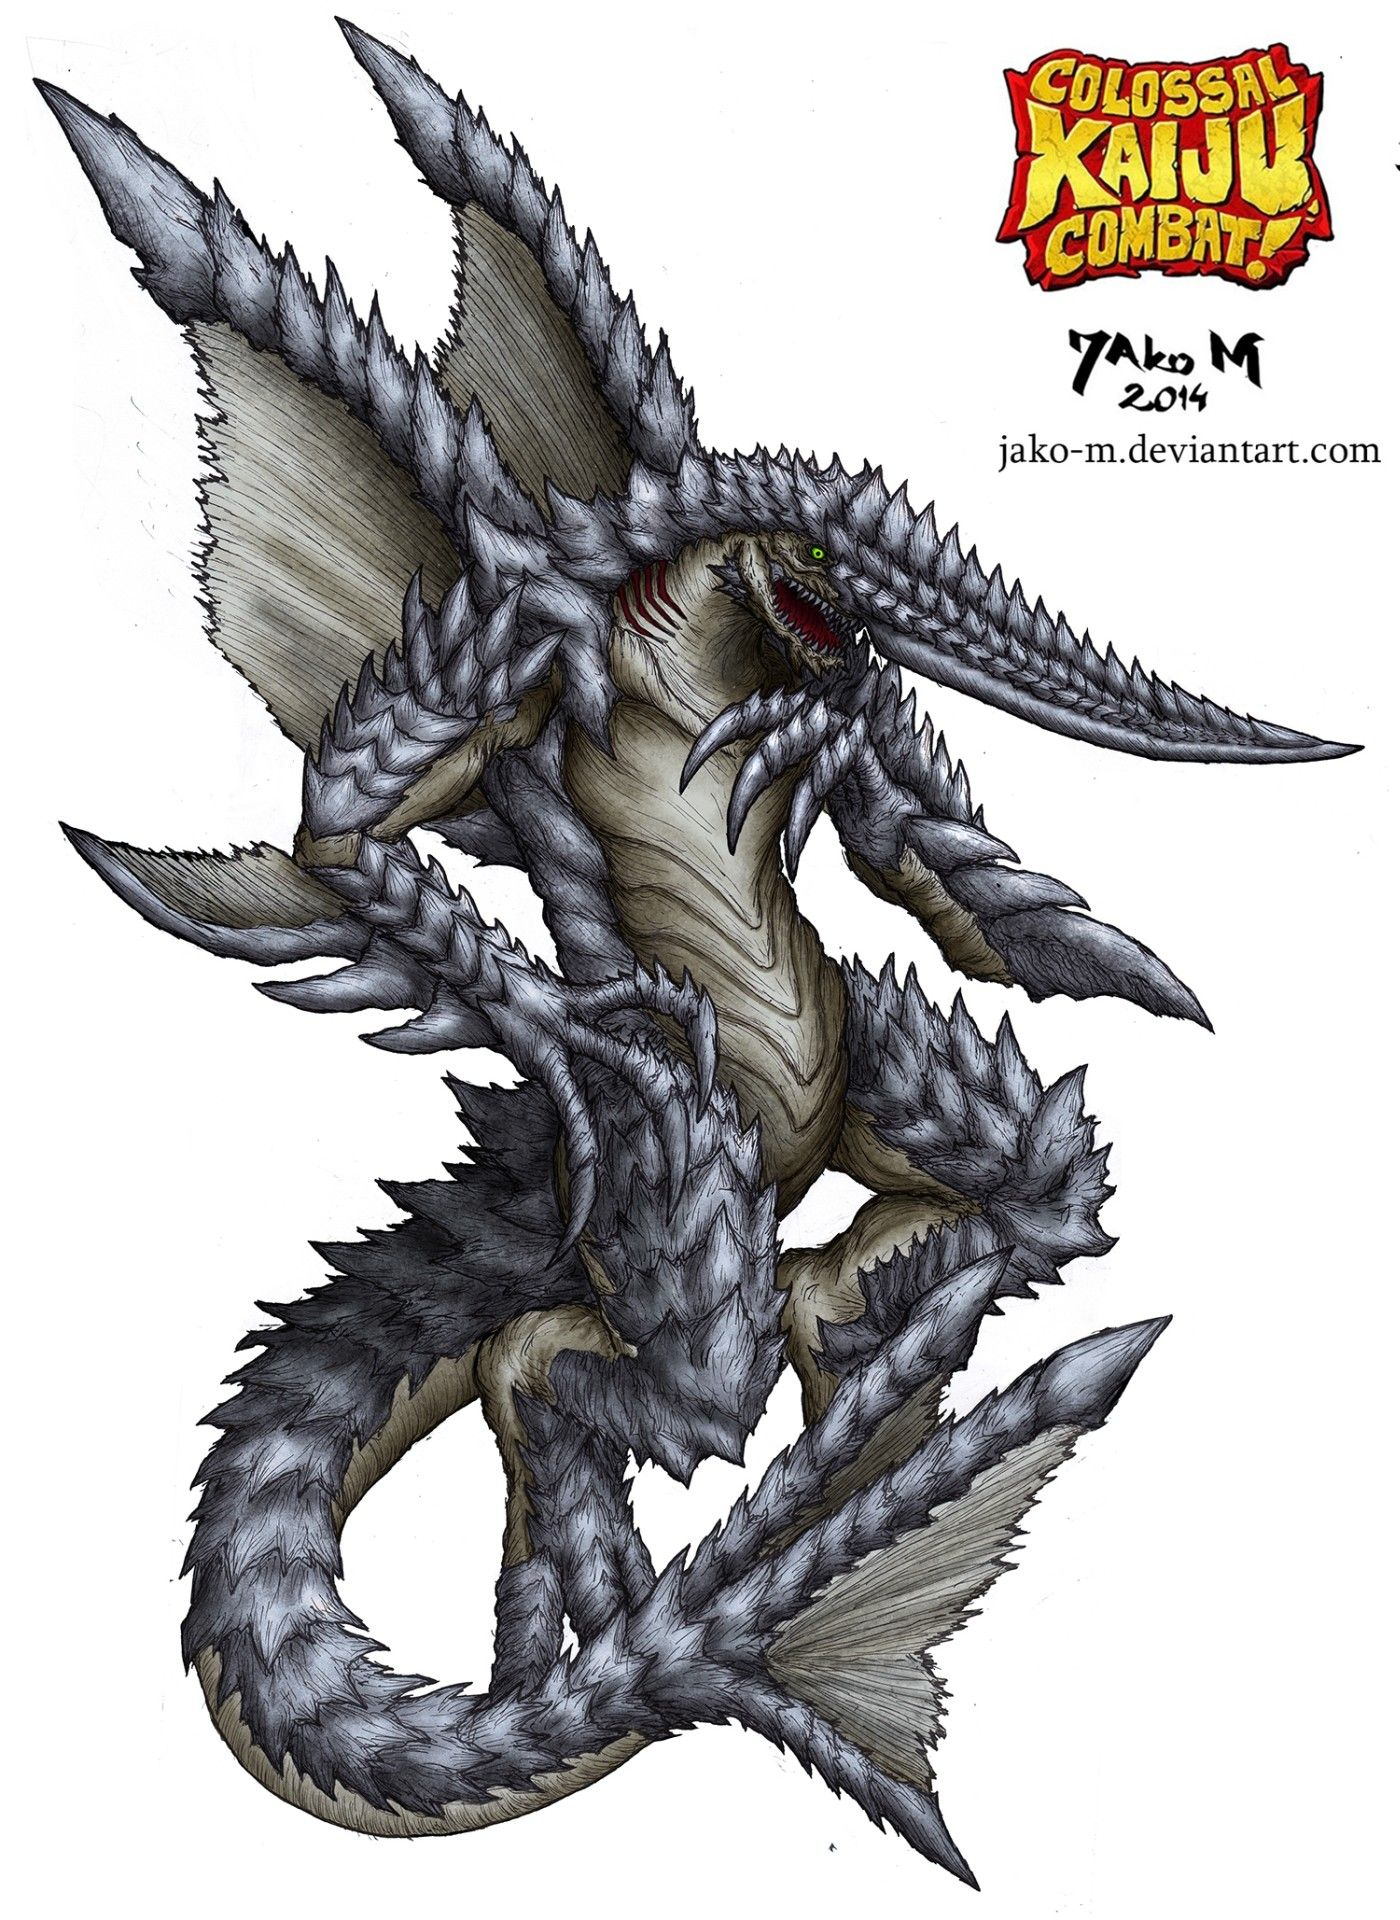 Pin by Brian Benoit on DnD in 2019 All godzilla monsters